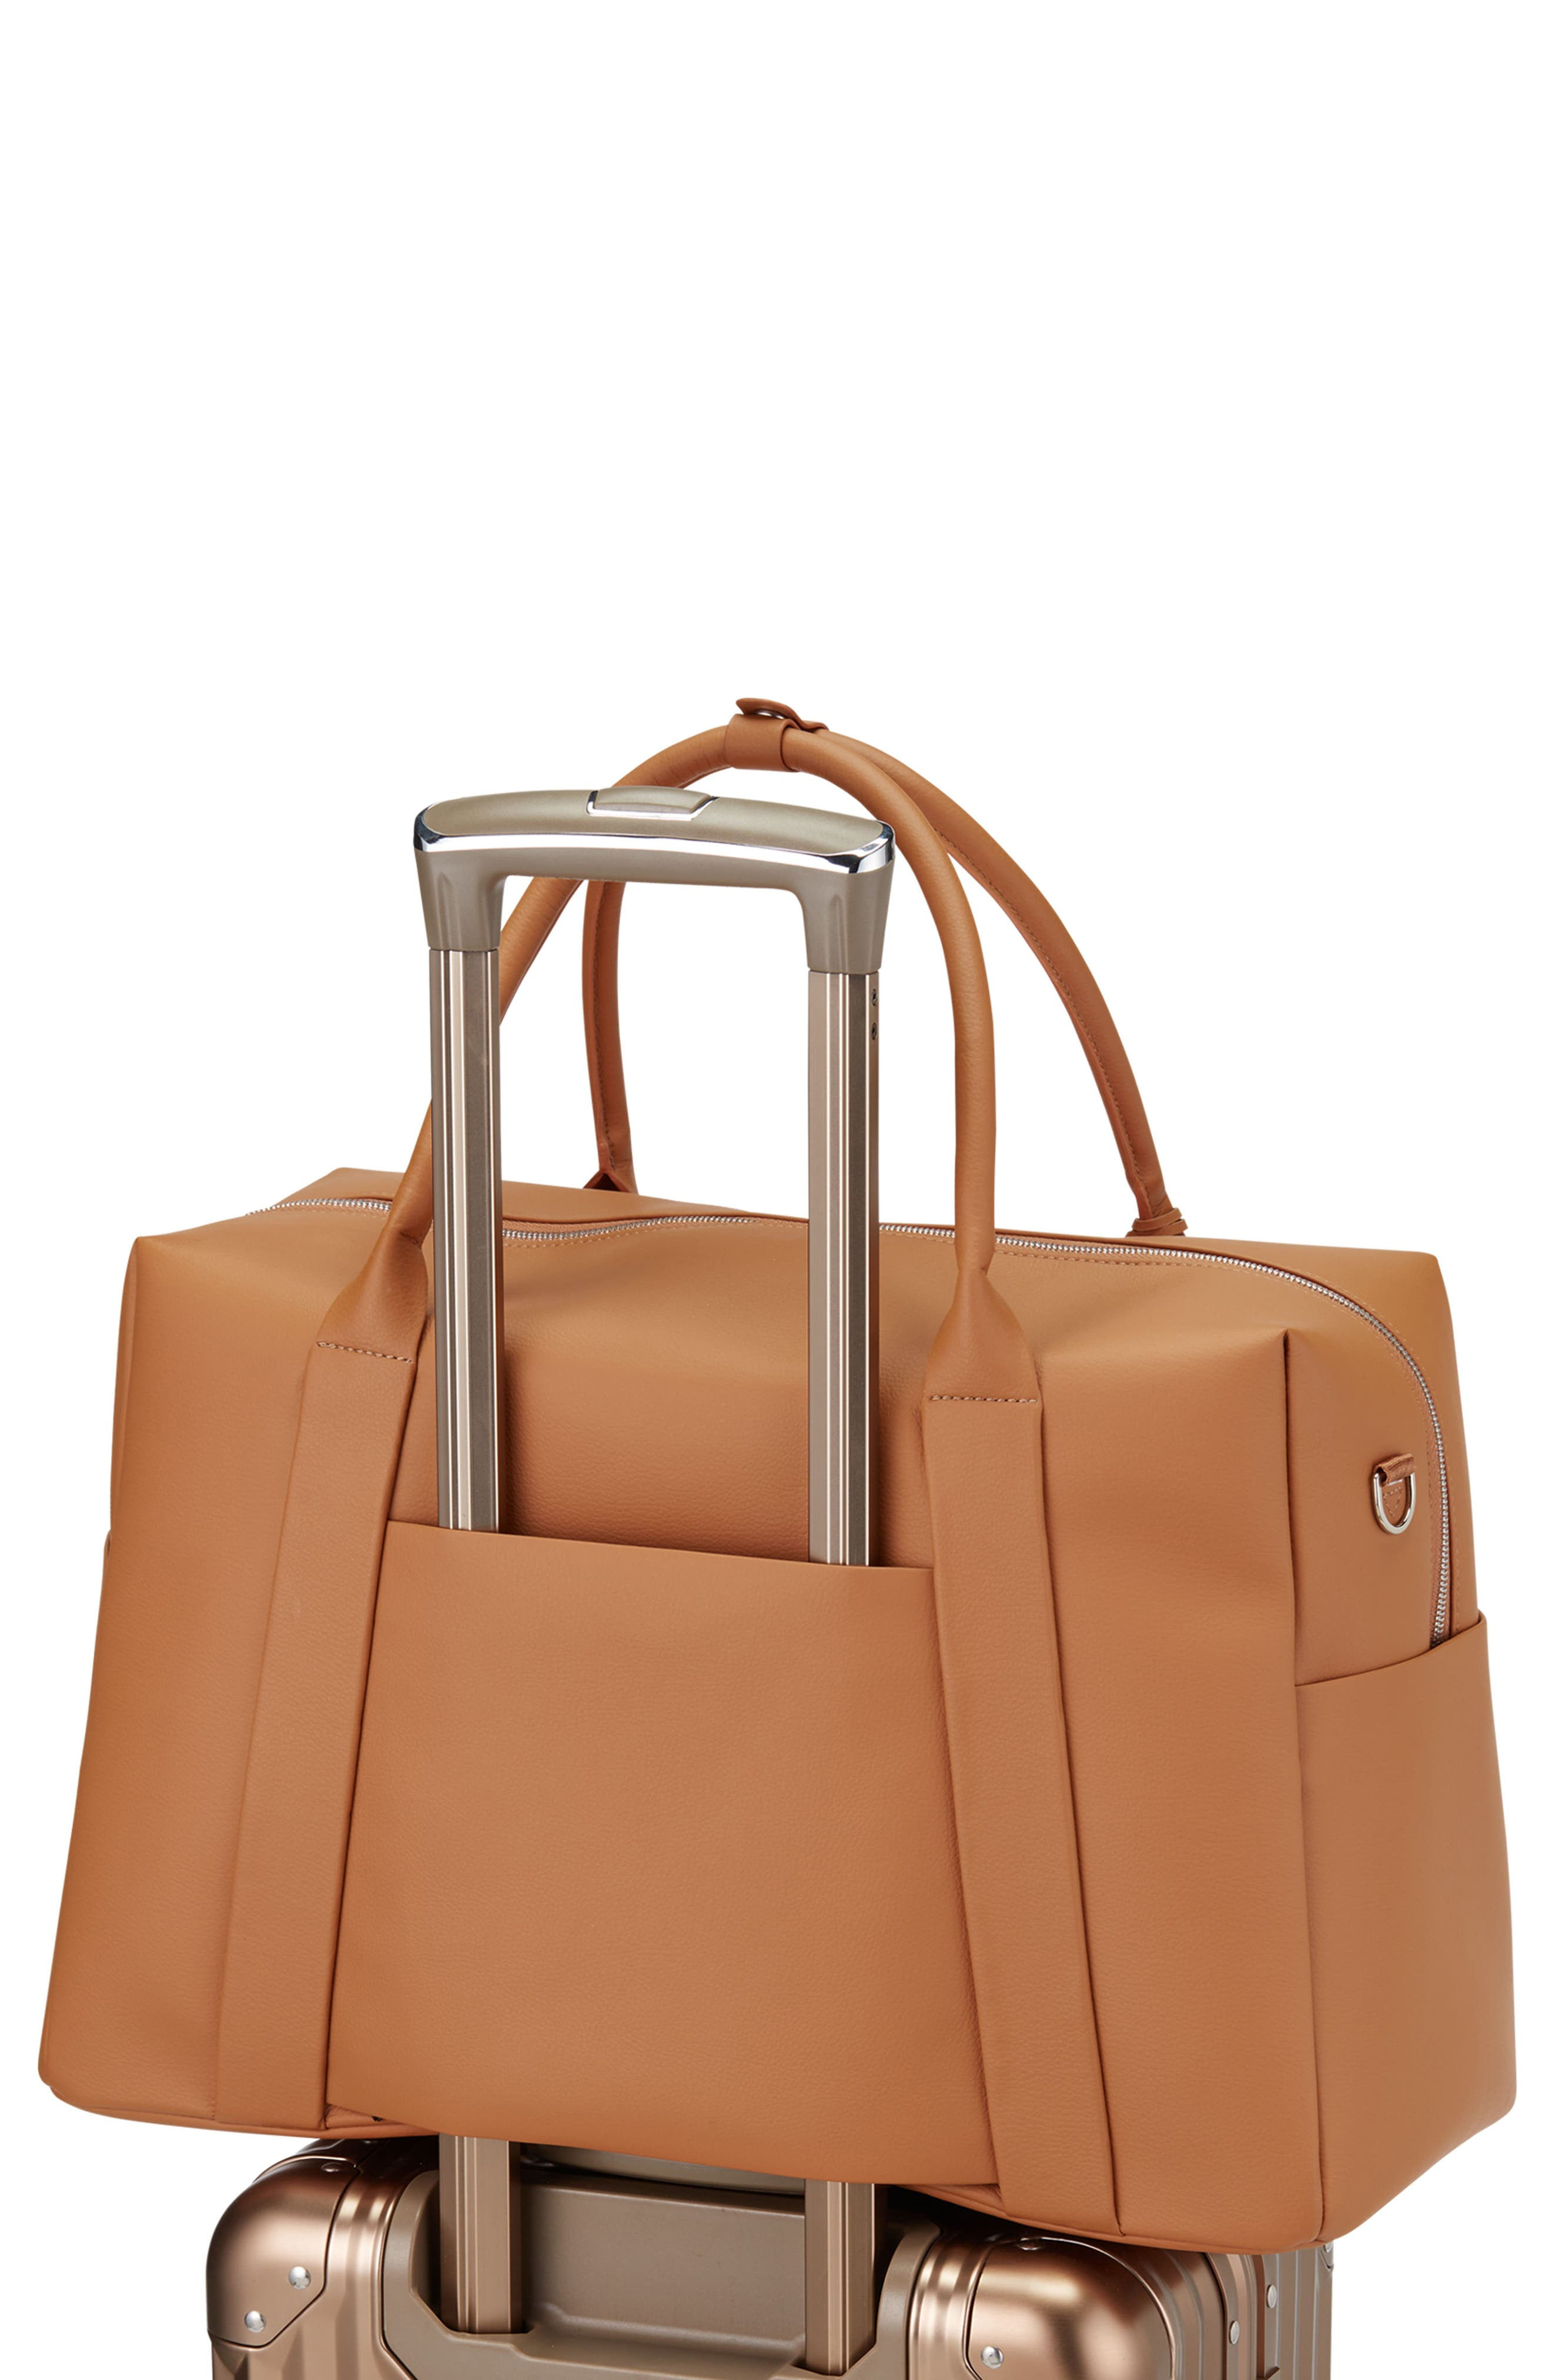 Signature 2.0 Faux Leather Duffel Bag,                             Alternate thumbnail 2, color,                             Pebbled Tan